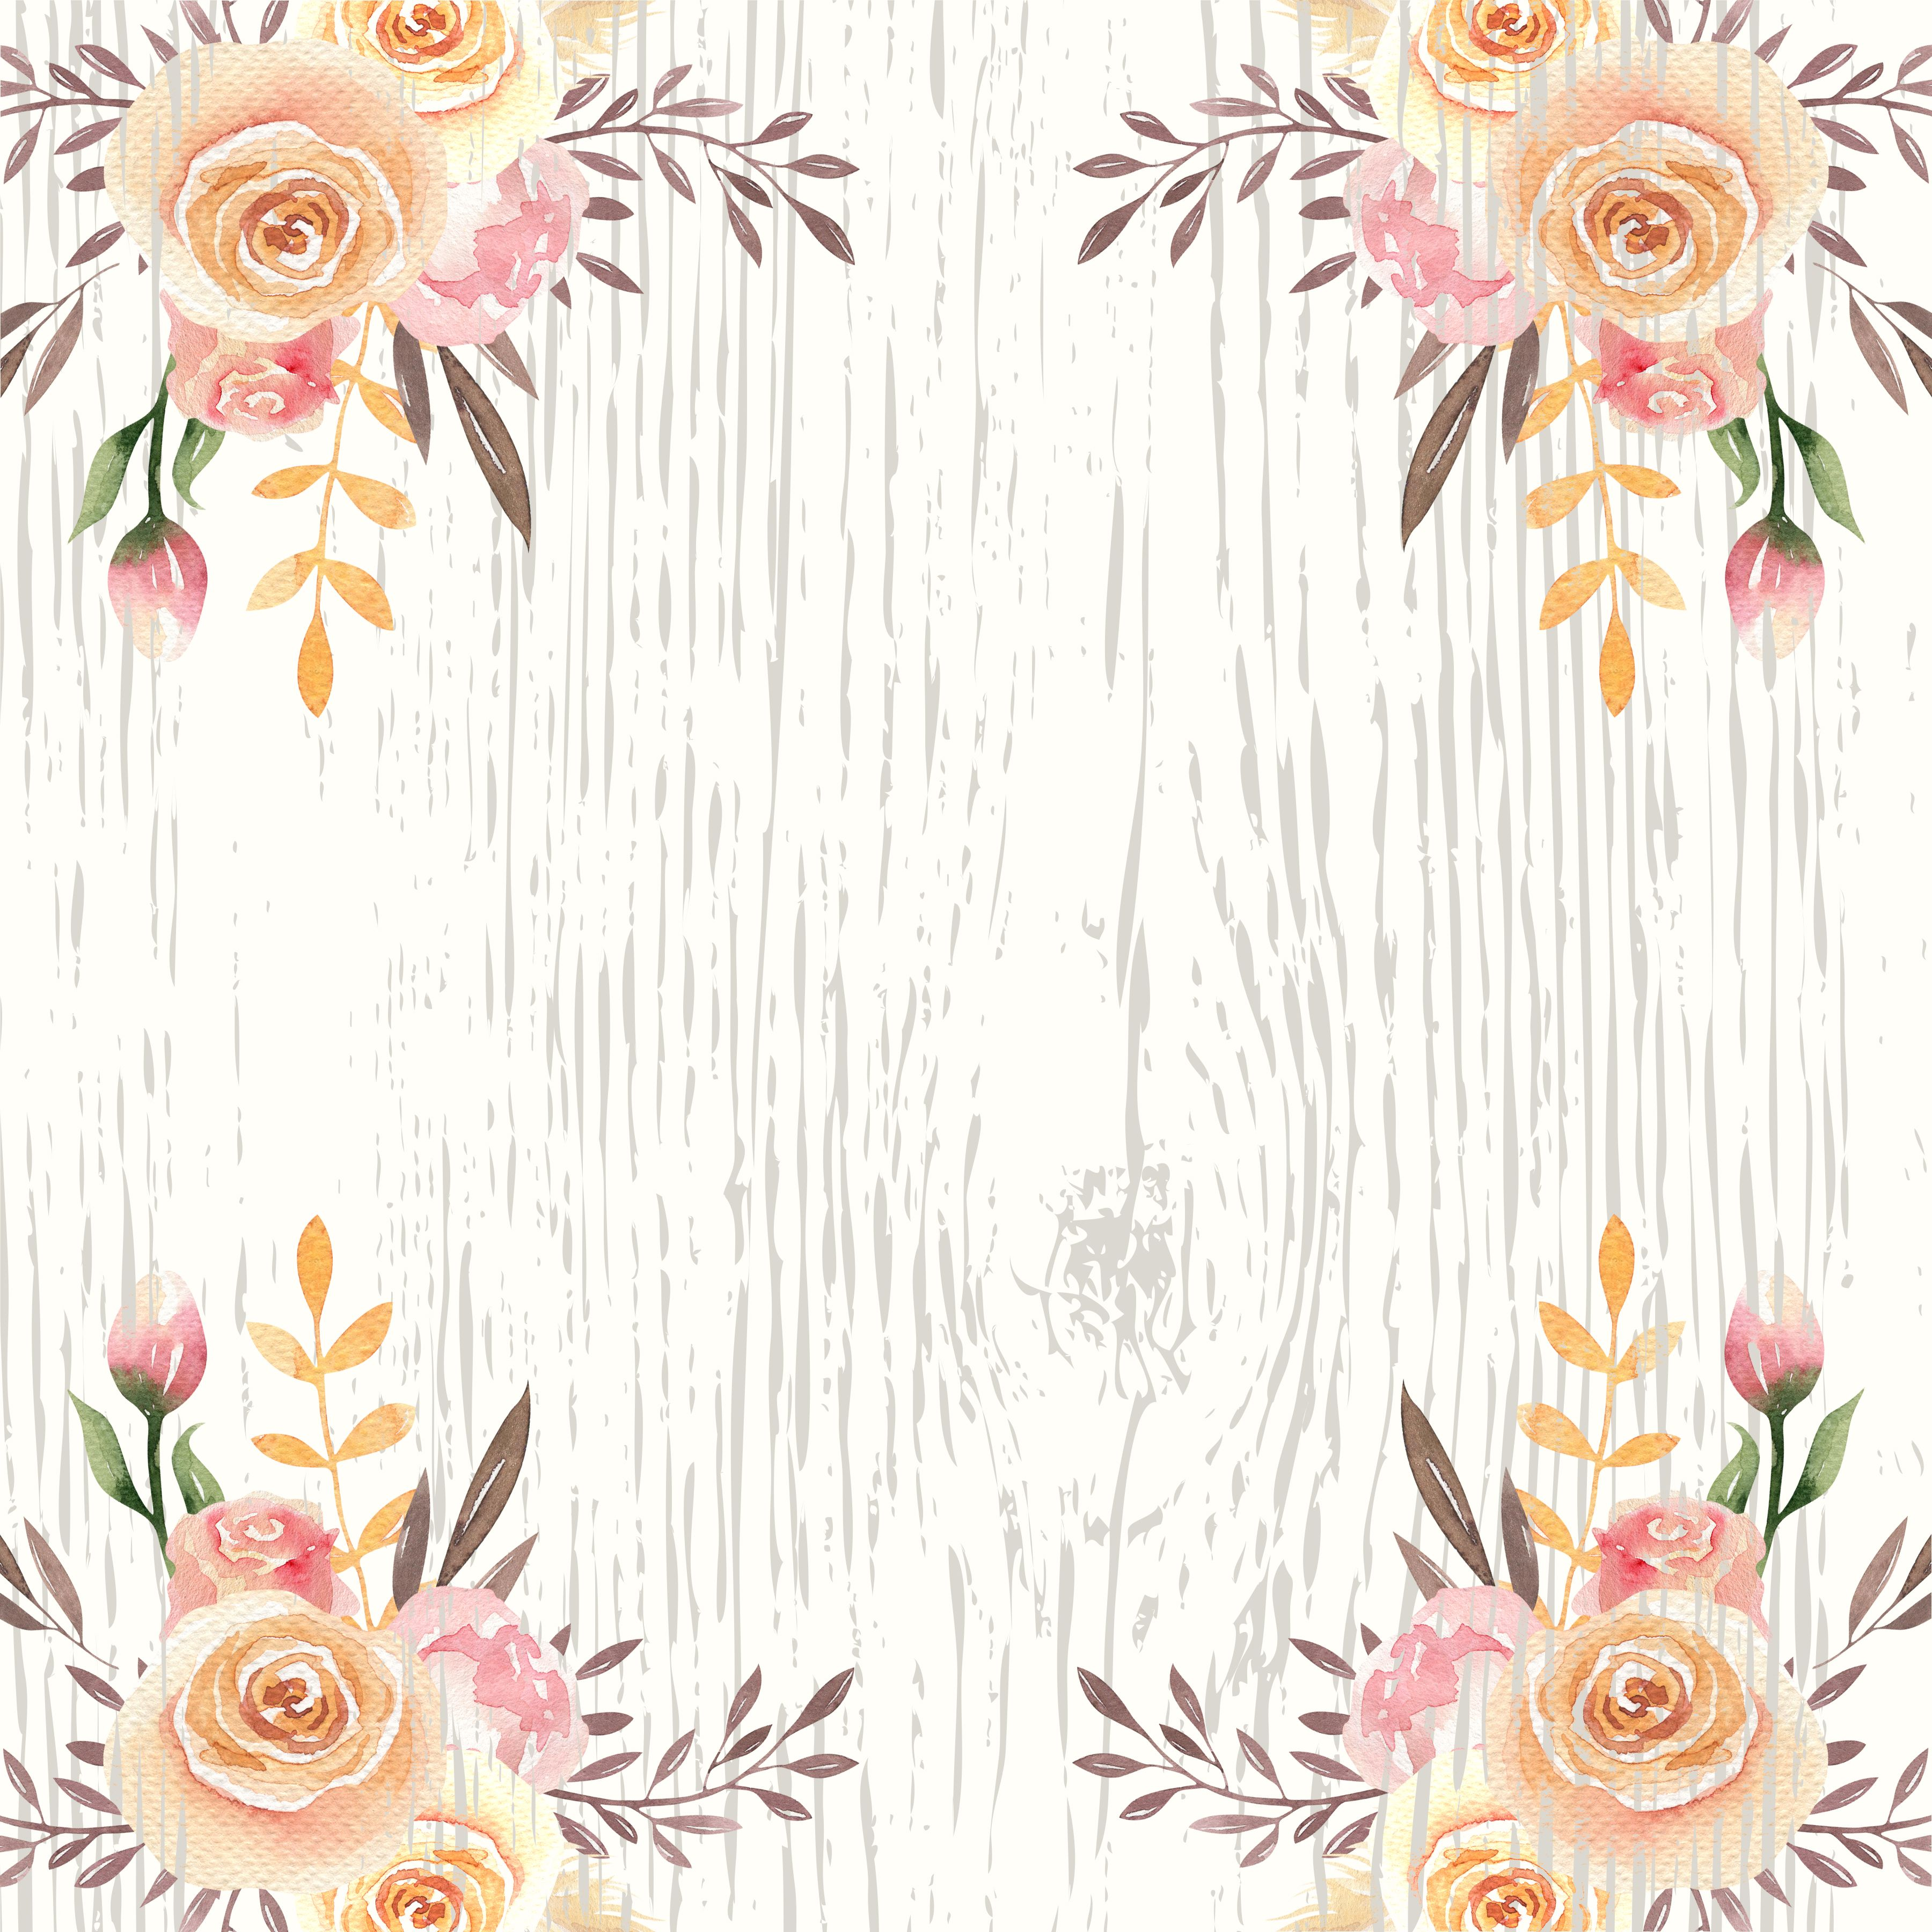 Free Bohemian Digital Papers By The Jumbo July Bundle Vintage Floral Backgrounds Photo Booth Props Free Rustic Paper